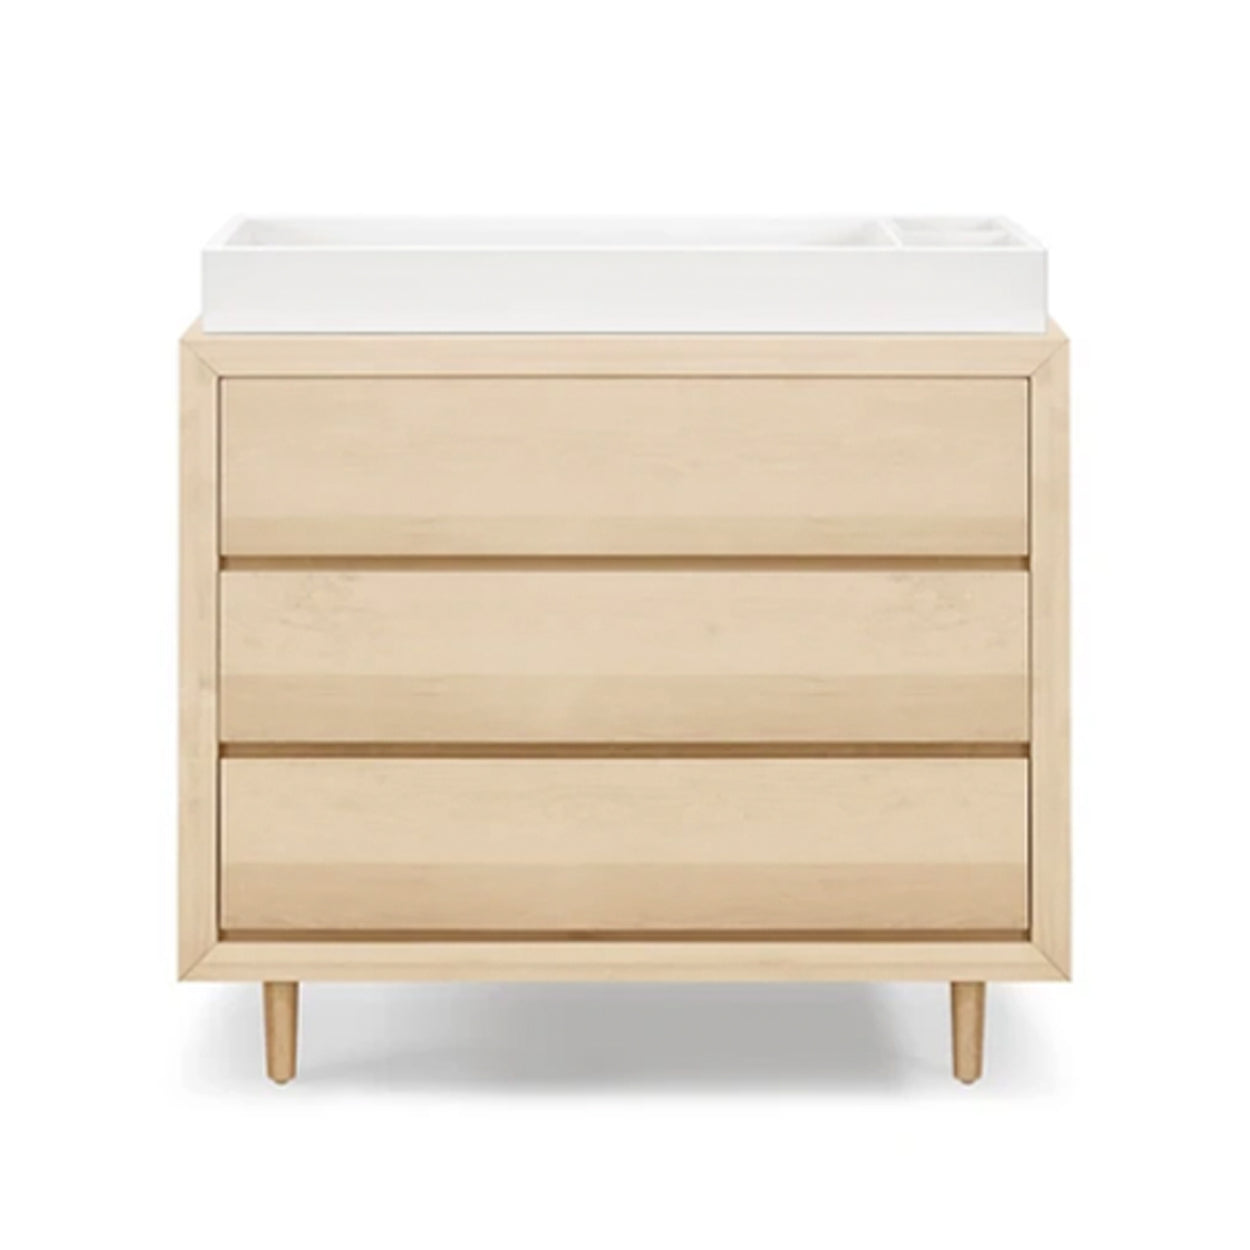 Nifty Dresser in Birch